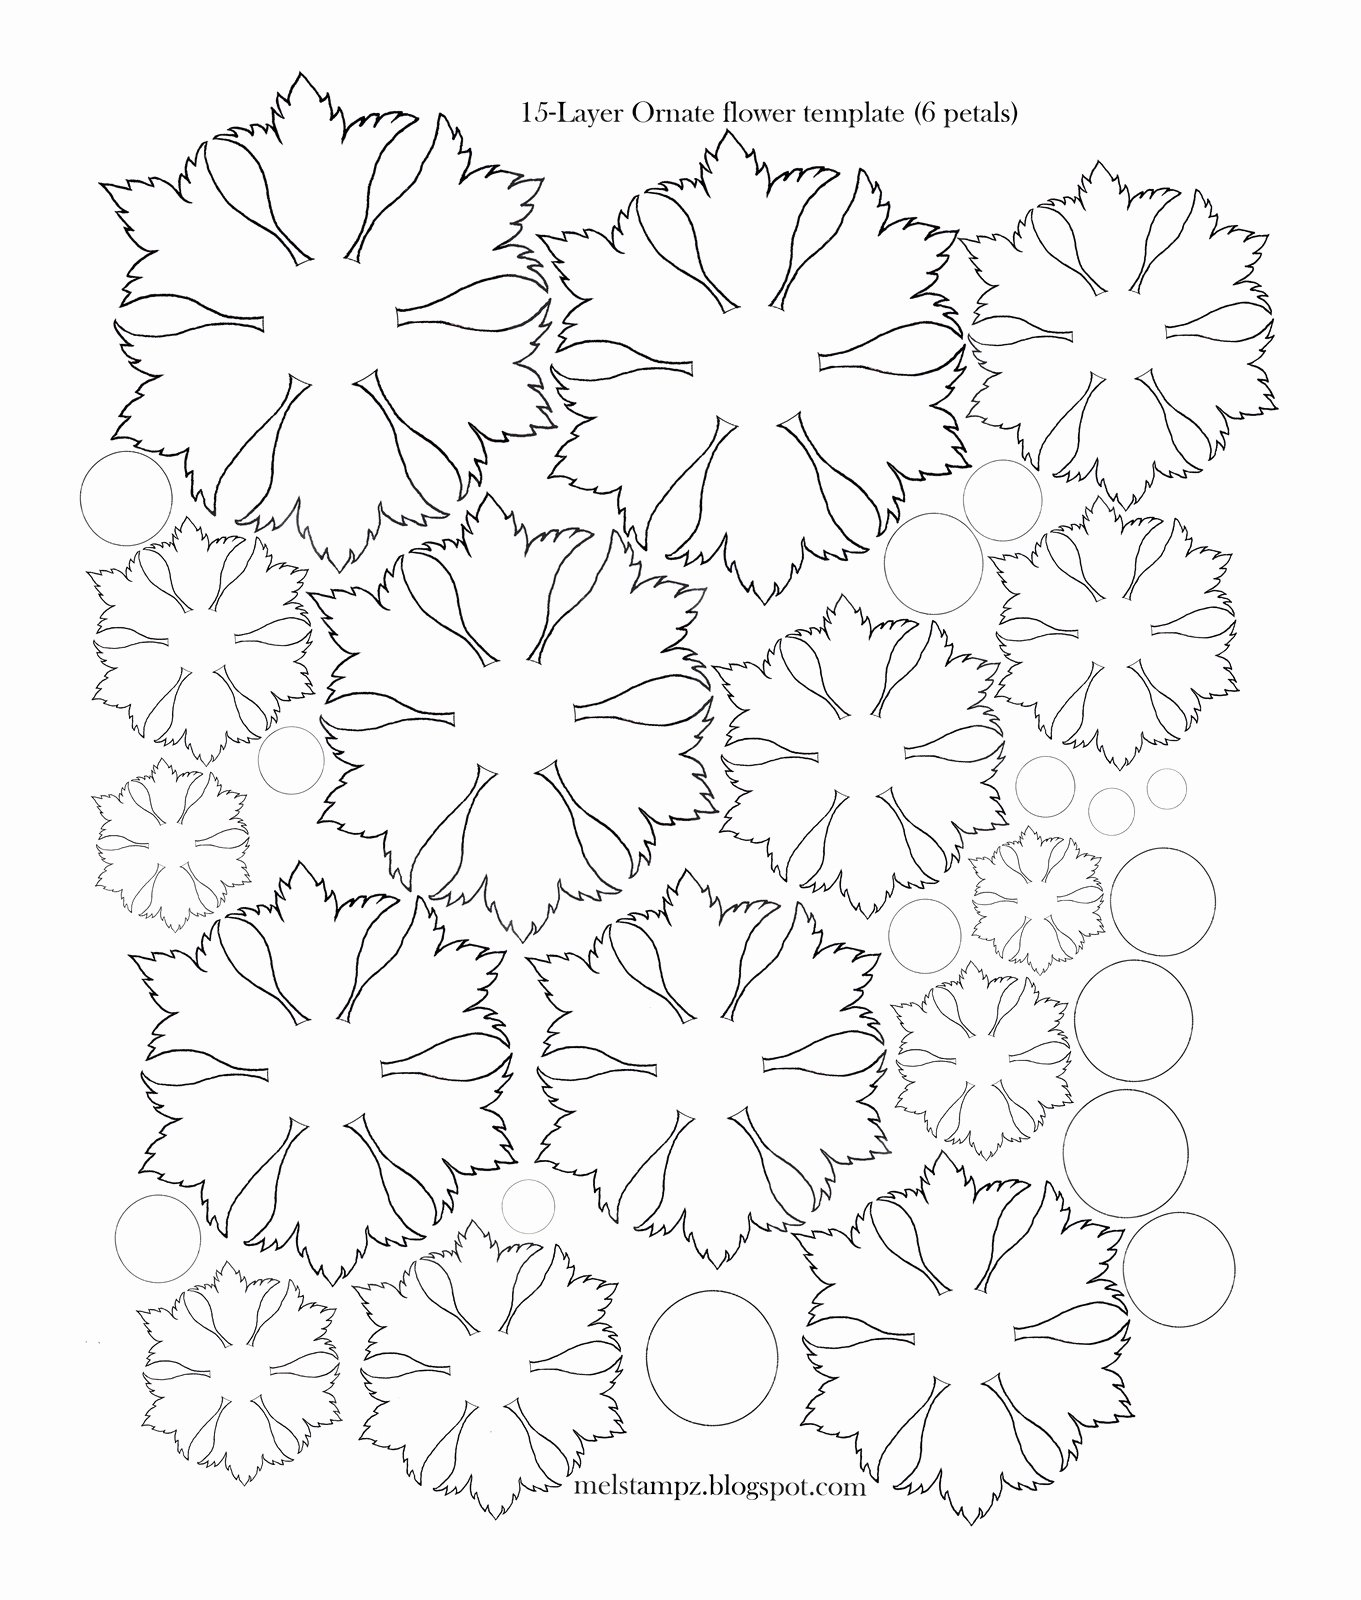 Paper Flower Template Printable Luxury Mel Stampz 6 Petal ornate Flower Template